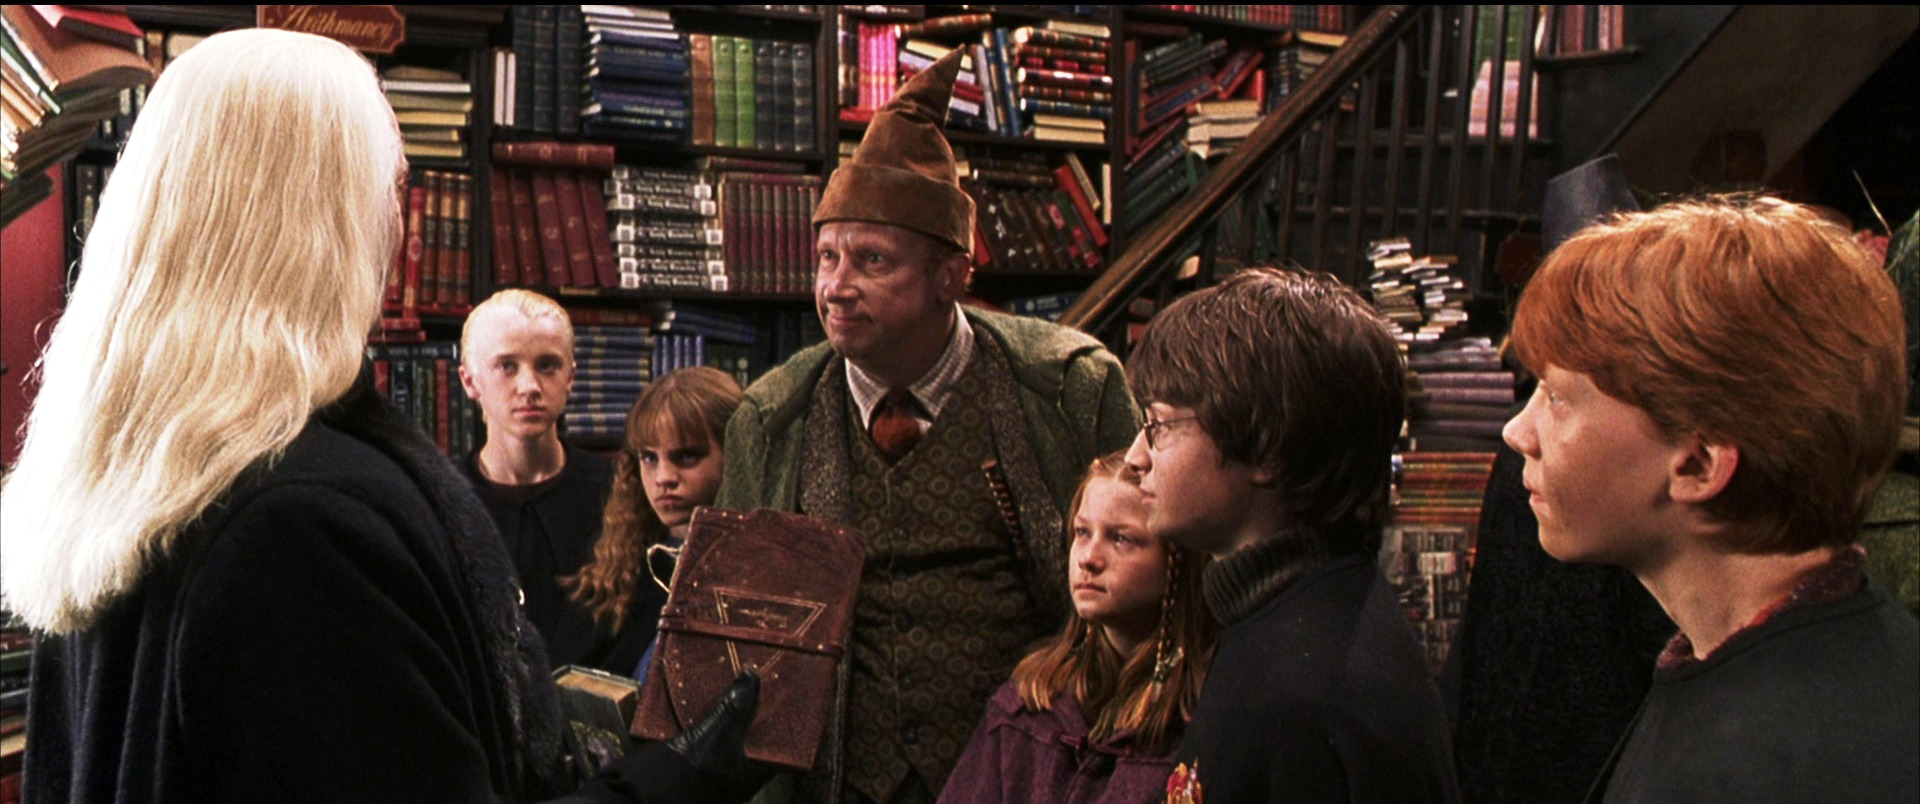 Harry-potter2-movie-screencaps.com-2858 | A Pilgrim in Narnia